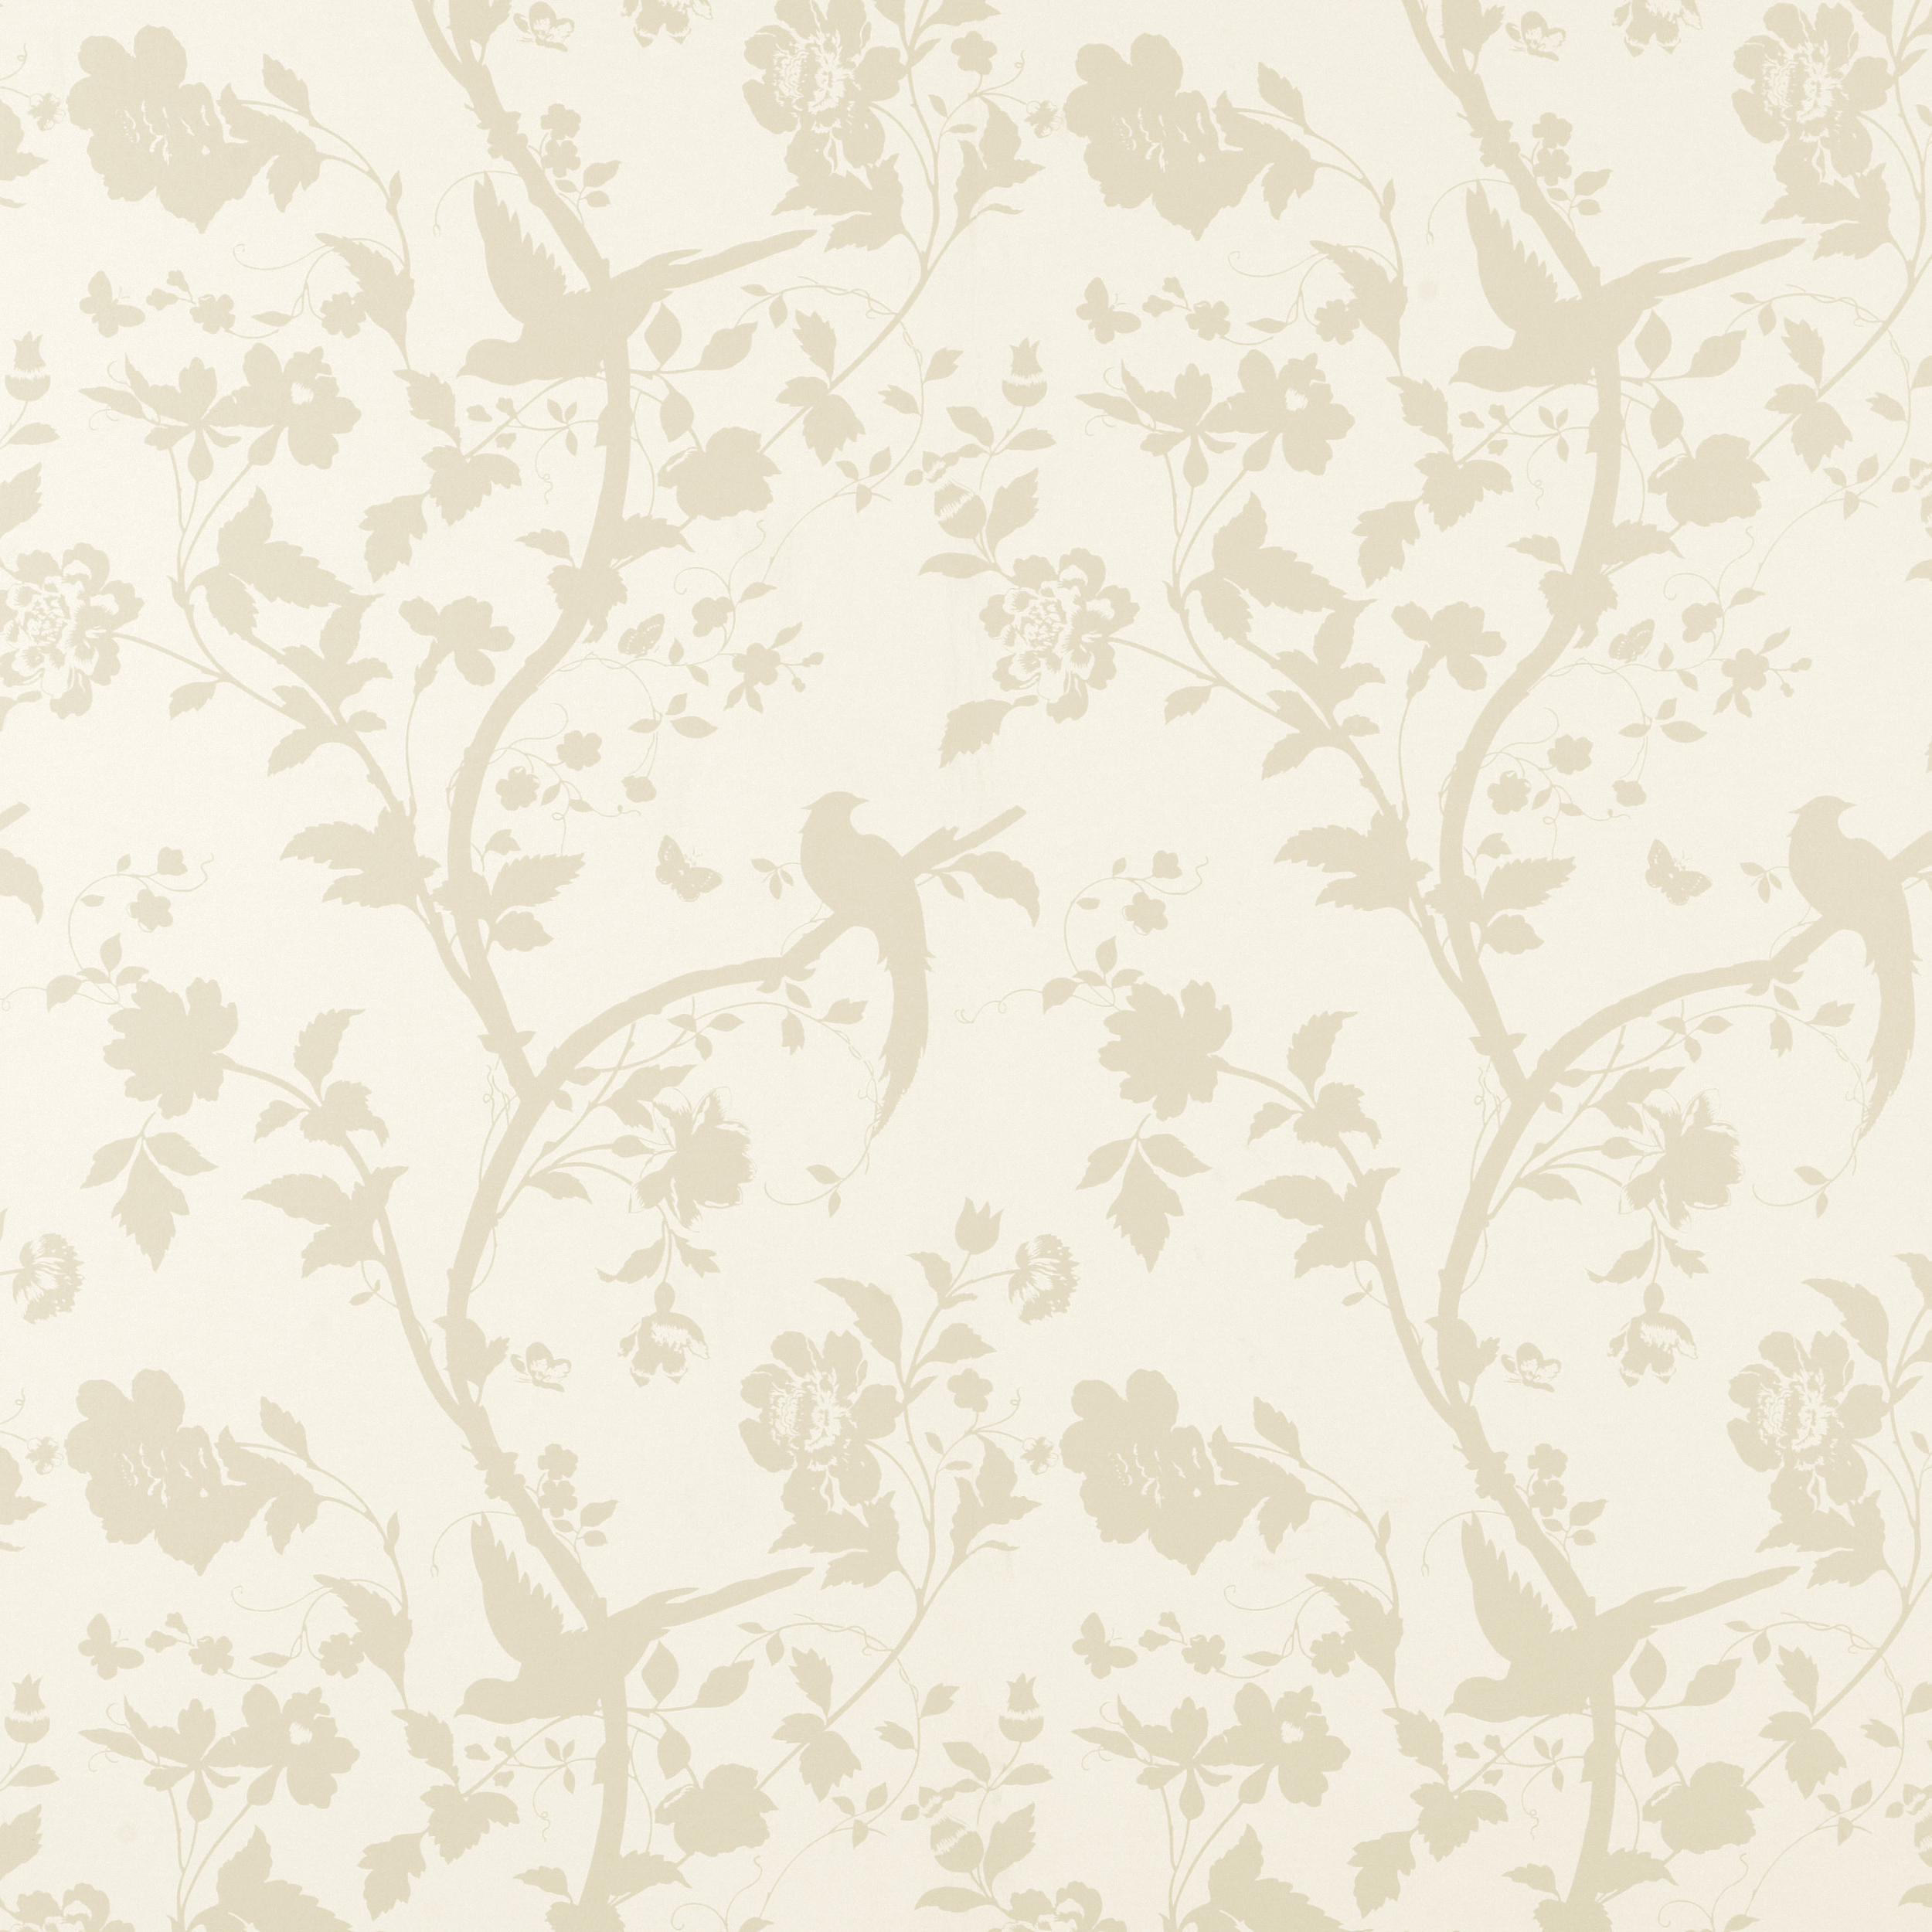 Wallpaper Oriental Garden GoldOff White Floral Wallpaper 2500x2500